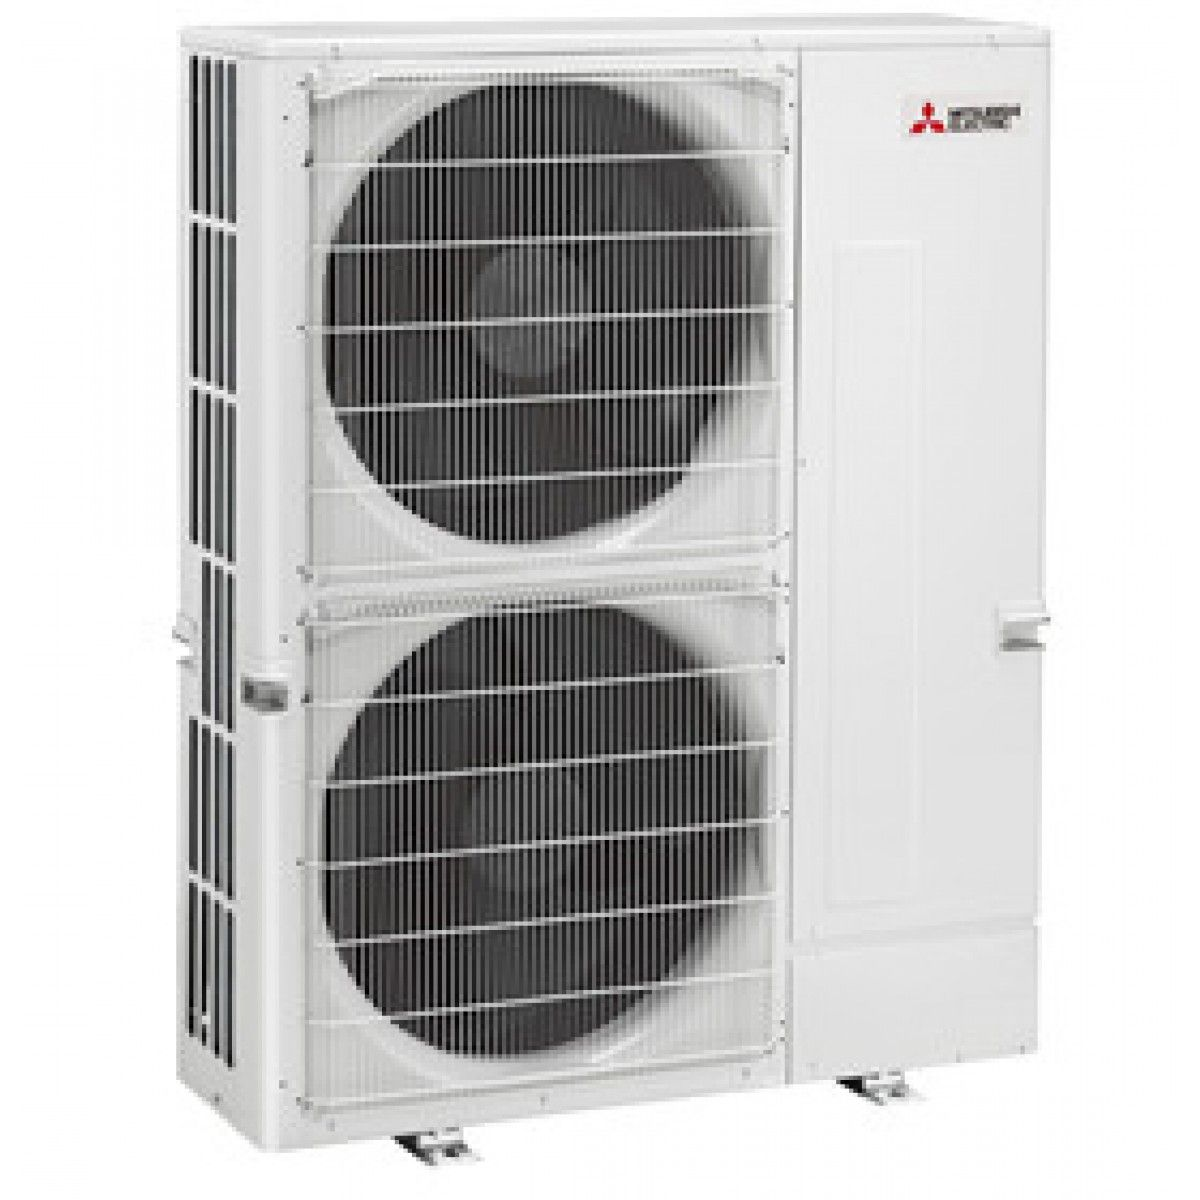 Mxz 8c48na Split Air Conditioning And Heating 48k Btu Up